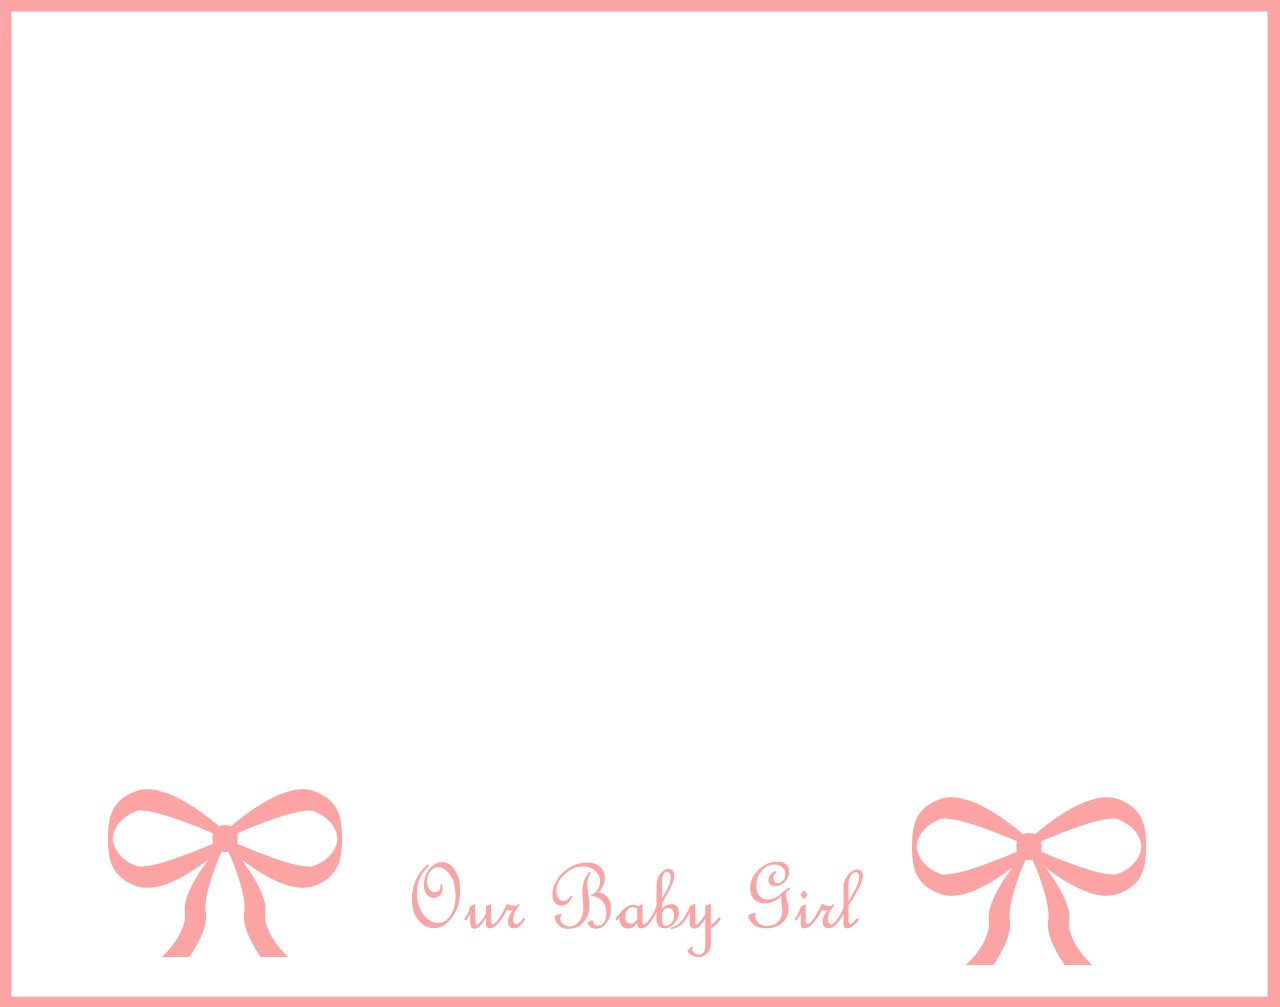 NEW BABY OPTION 2 New Baby Girl ( pink background), Baby's name,: http://background-pictures.picphotos.net/new-baby-girl-background-2/thelittlepillow.com*11_pages*jpegs*11_babytrainGbkg2.jpg/